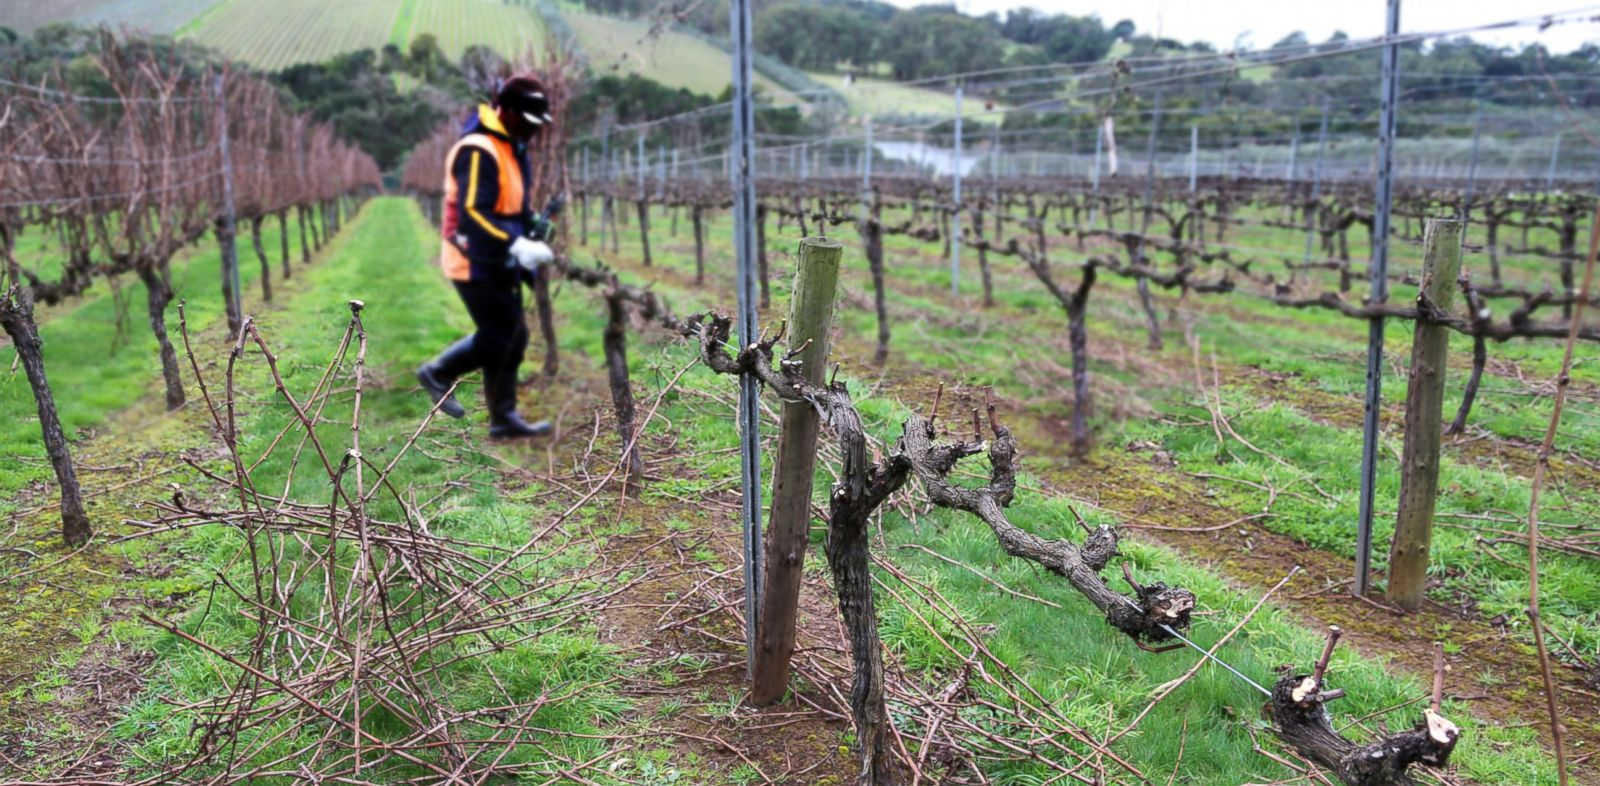 PHOTO: According to Morgan Stanely, declining wine production will not be able to meet future demand.